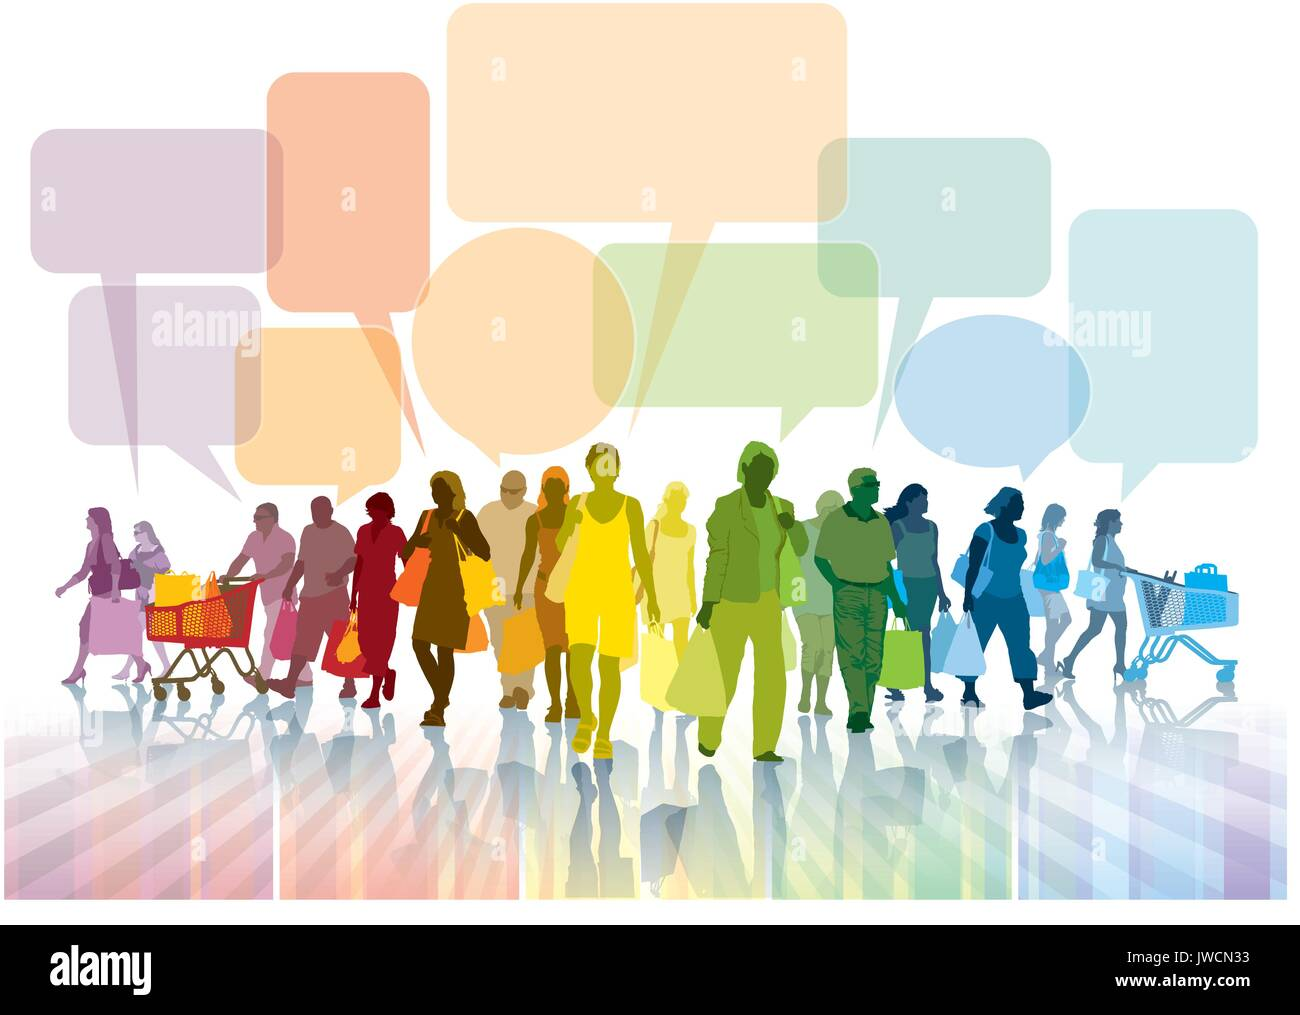 Colorful crowd of people with bags is walking and talking about shopping. - Stock Vector